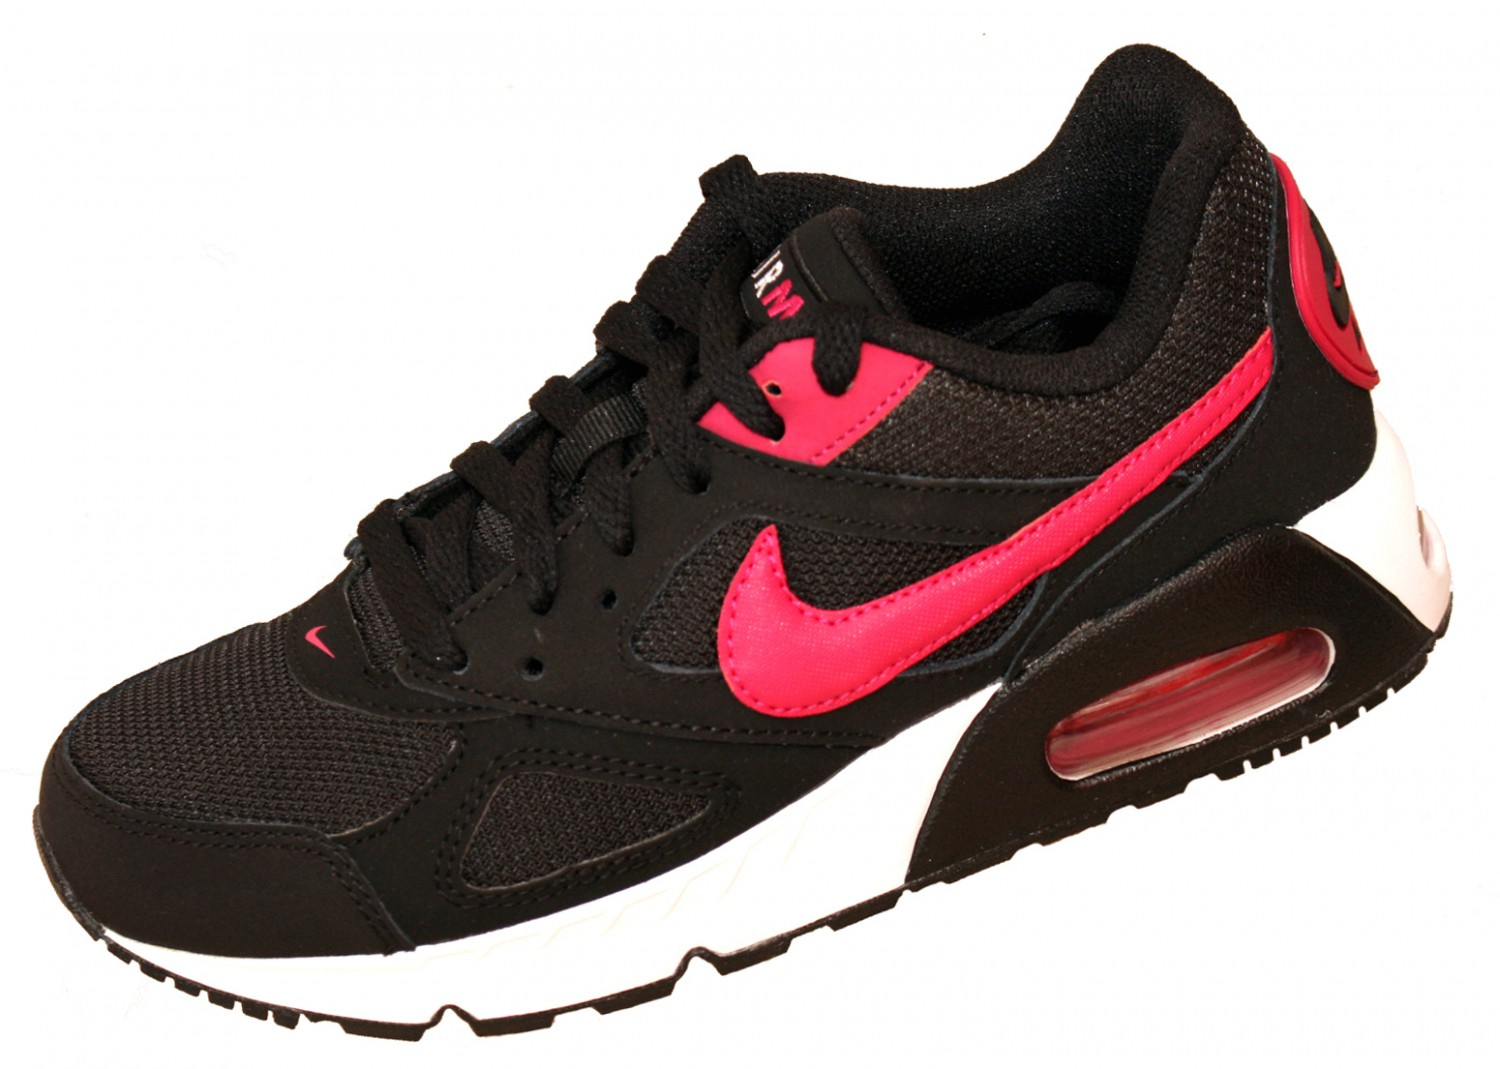 wmns nike air max ivo 580519 schwarz pink 061 sneaker sportschuhe schuhe damen sneakers. Black Bedroom Furniture Sets. Home Design Ideas